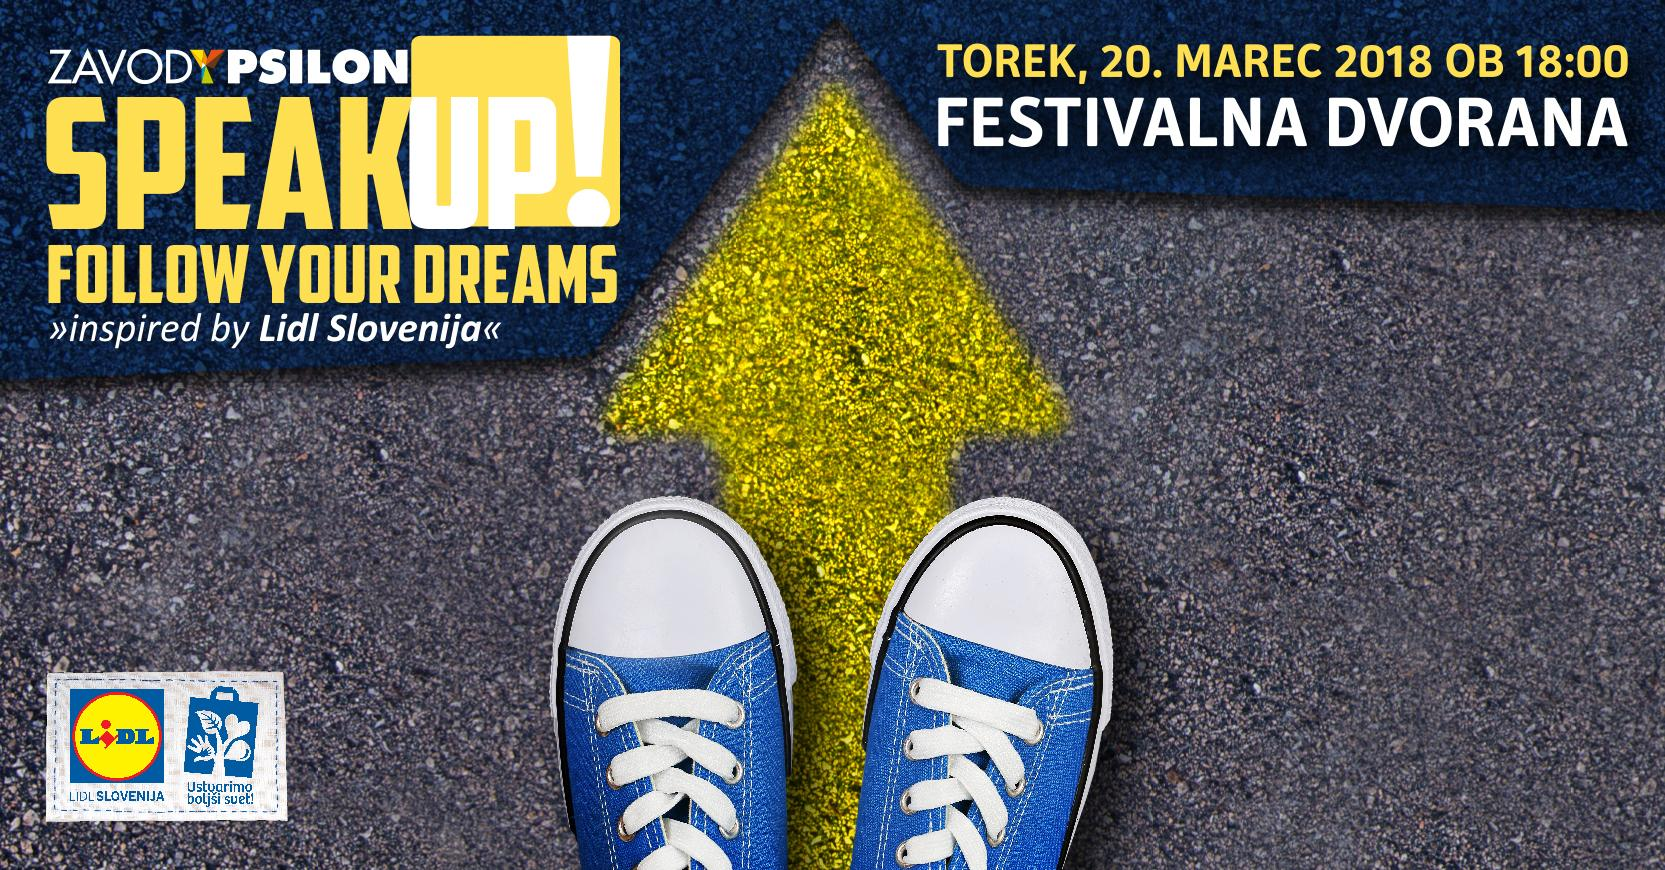 Speak Up! Follow Your Dreams inspired by Lidl